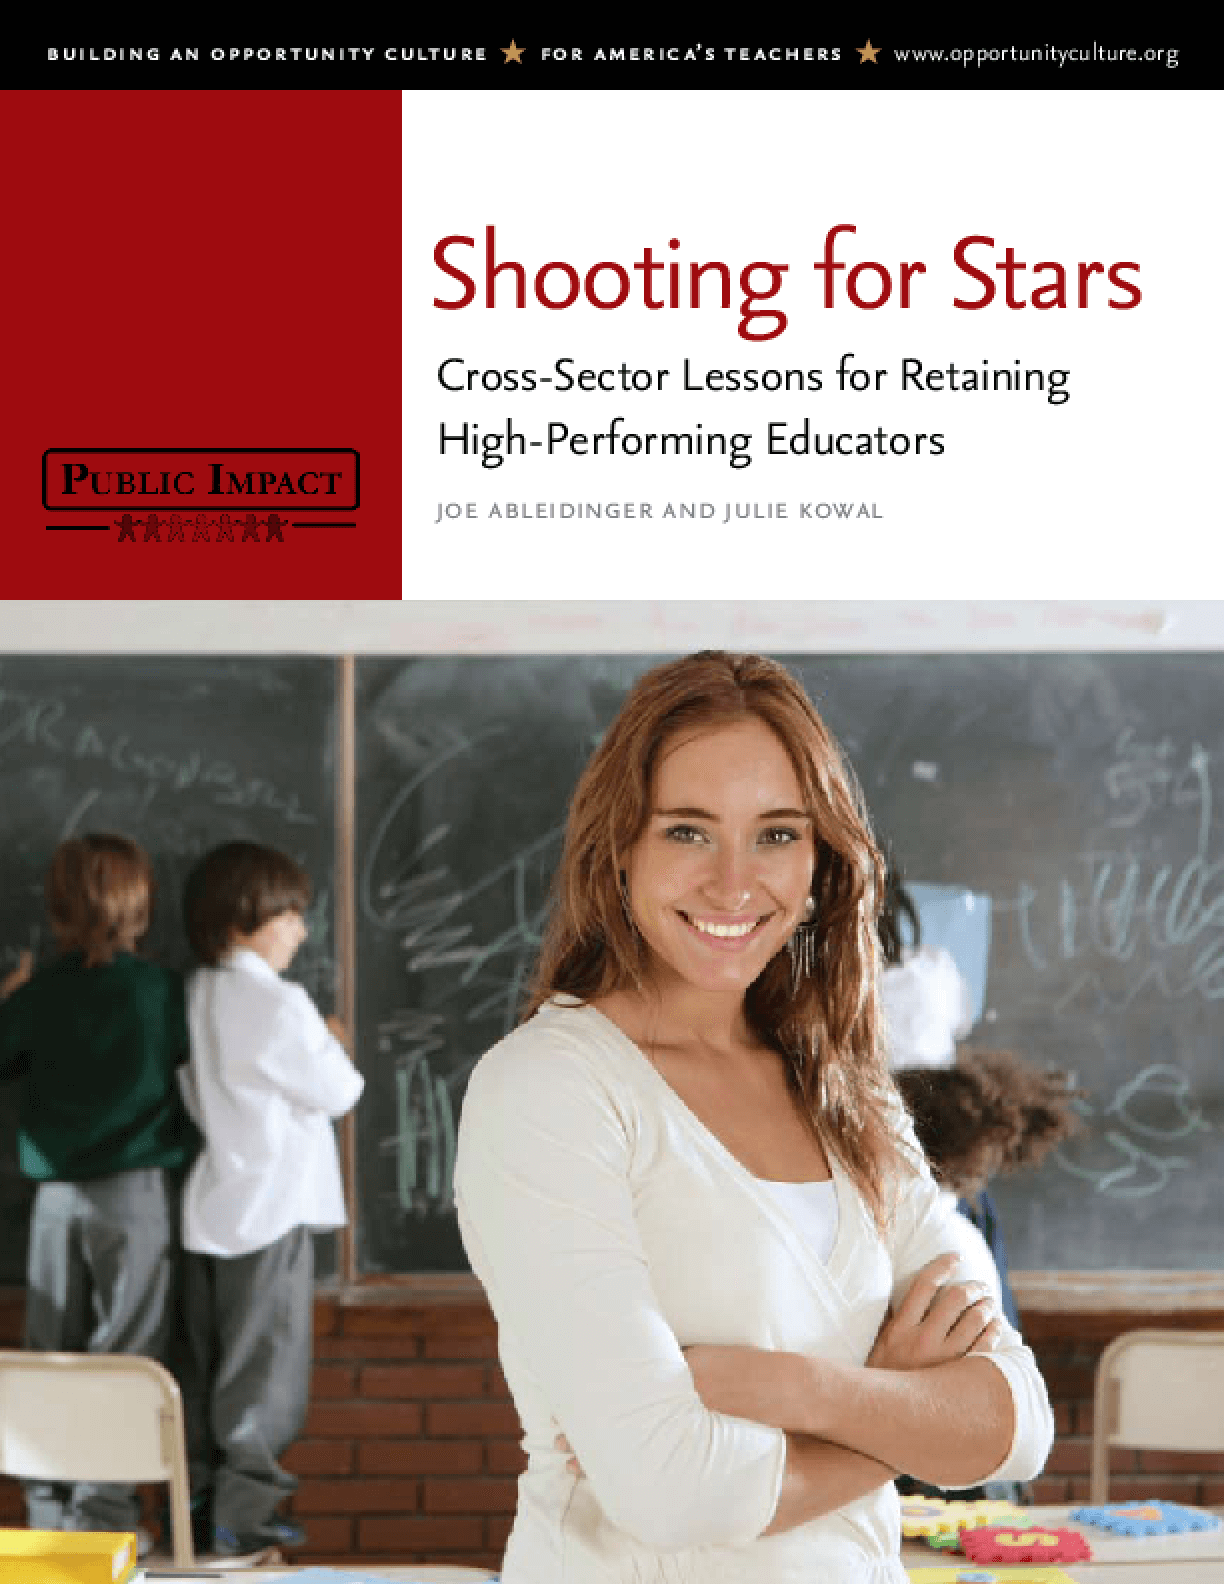 Shooting for Stars: Cross-Sector Lessons for Retaining High-Performing Educators